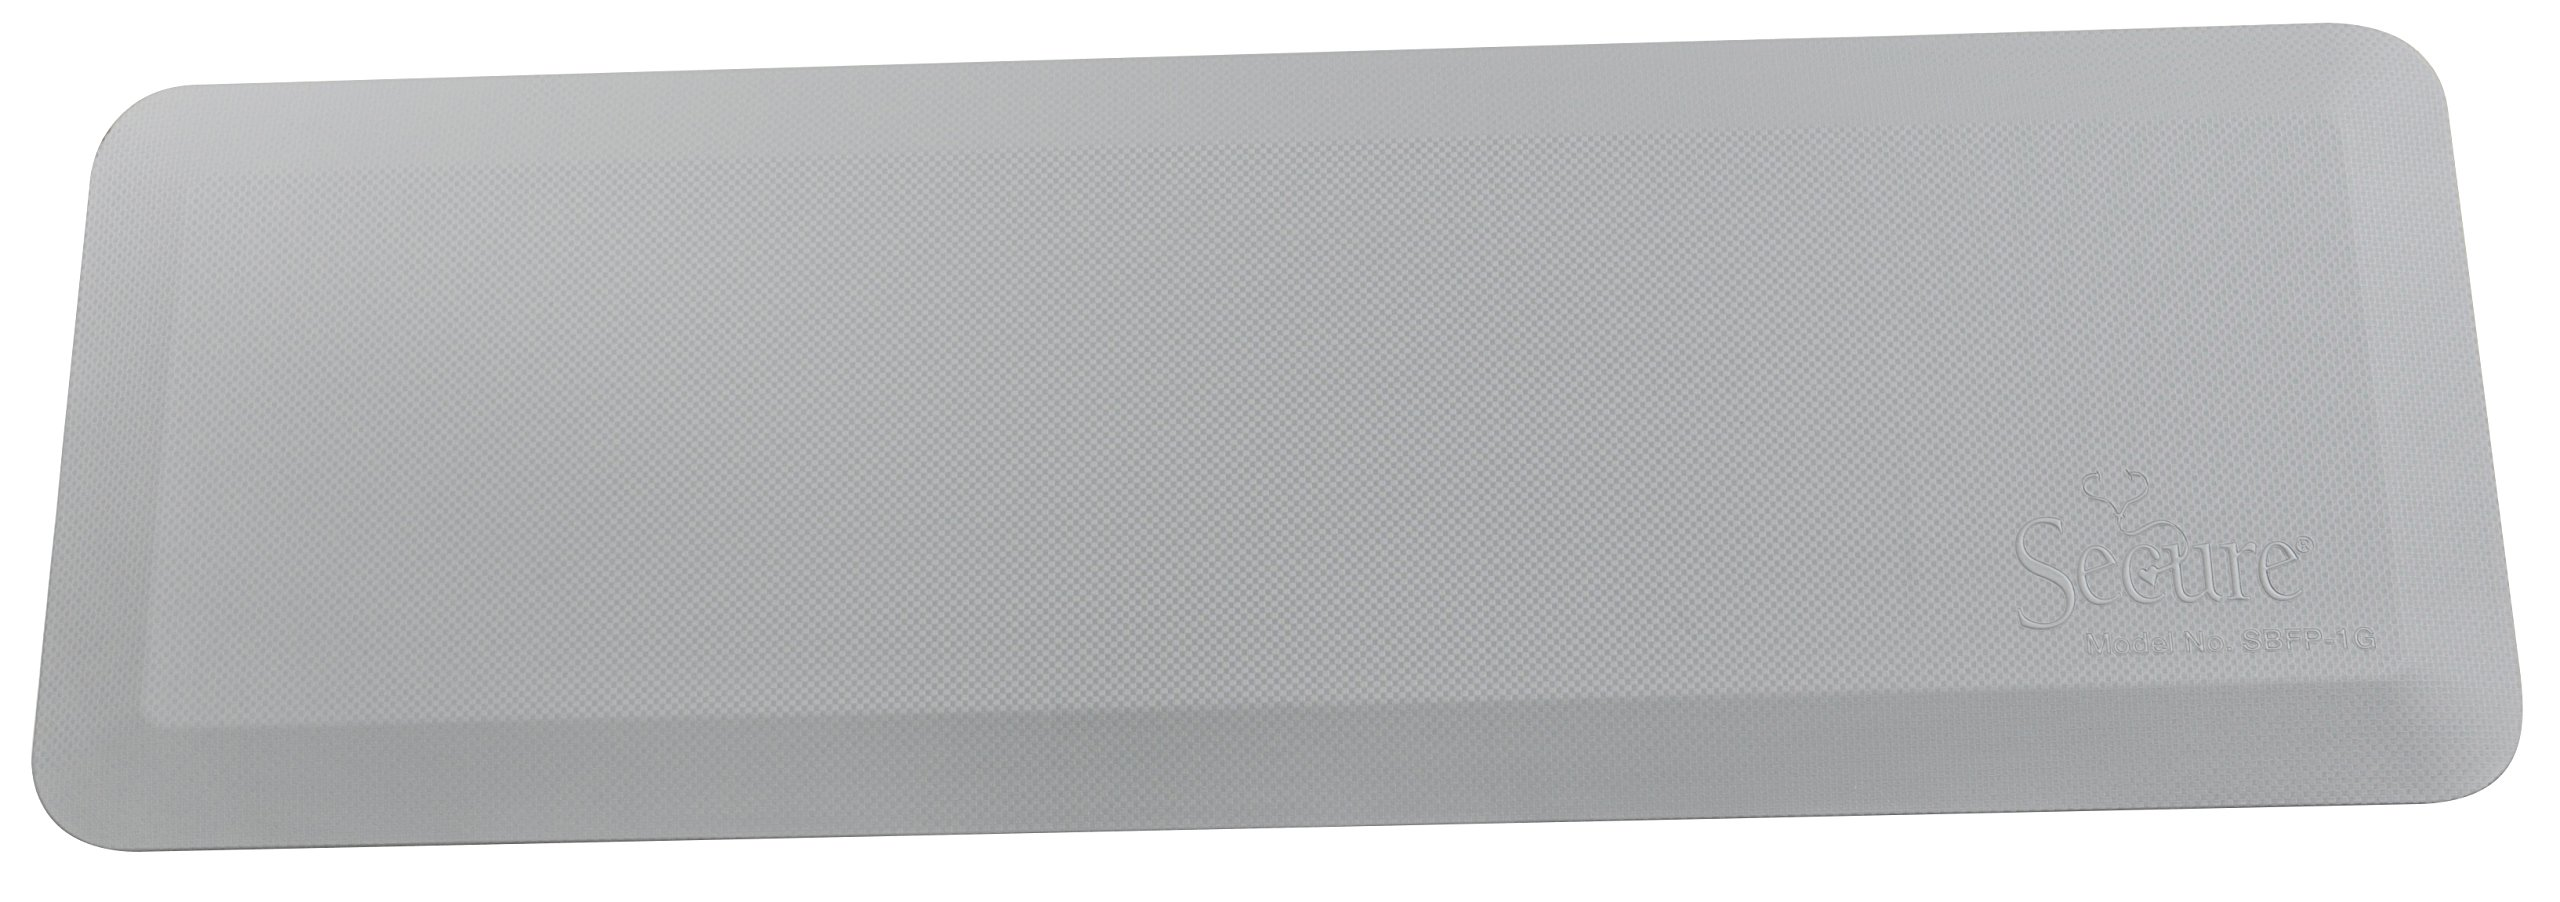 "Secure SBFP-1G Flatpad Beveled Edge Bedside Fall Safety Mat, Gray, 70""Lx24""Wx1""H - Waterproof, Antimicrobial, Non Slip, Durable Cover Material"